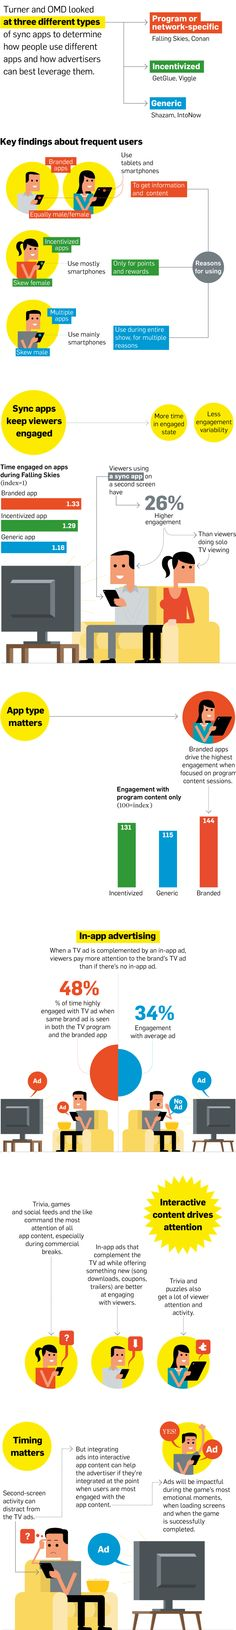 Types of Second-Screen Apps That Keep Users Engaged - studies by Time Warner Medialab Small Business Marketing, Social Media Marketing, Digital Marketing, Social Tv, Applique, Journey Mapping, Time Warner, Tv Ads, Always Learning